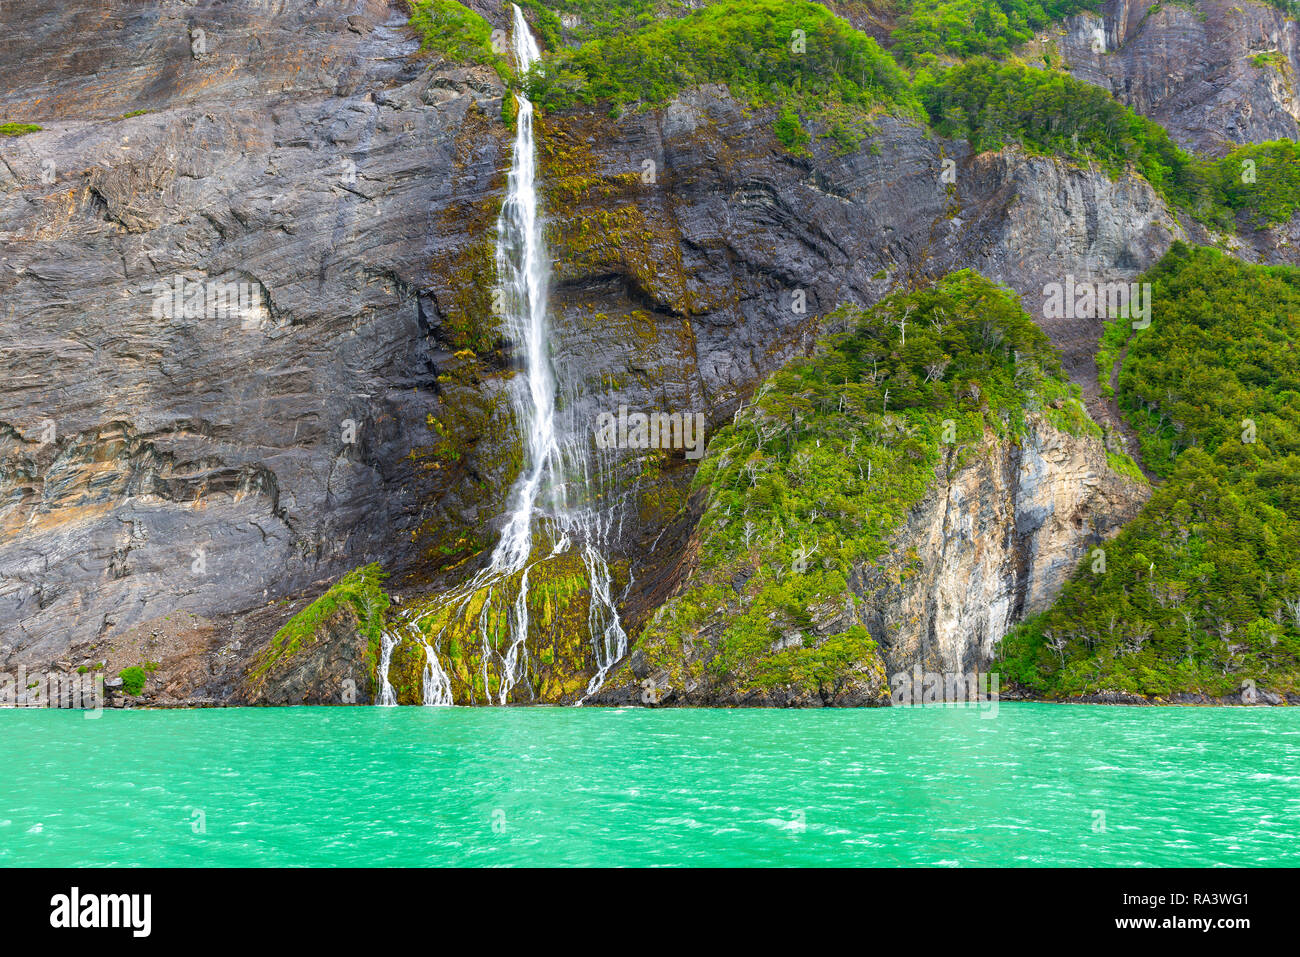 The turquoise fjord of the Last Hope with a waterfall along a cliff near the Torres del Paine national park, Patagonia, Chile. - Stock Image